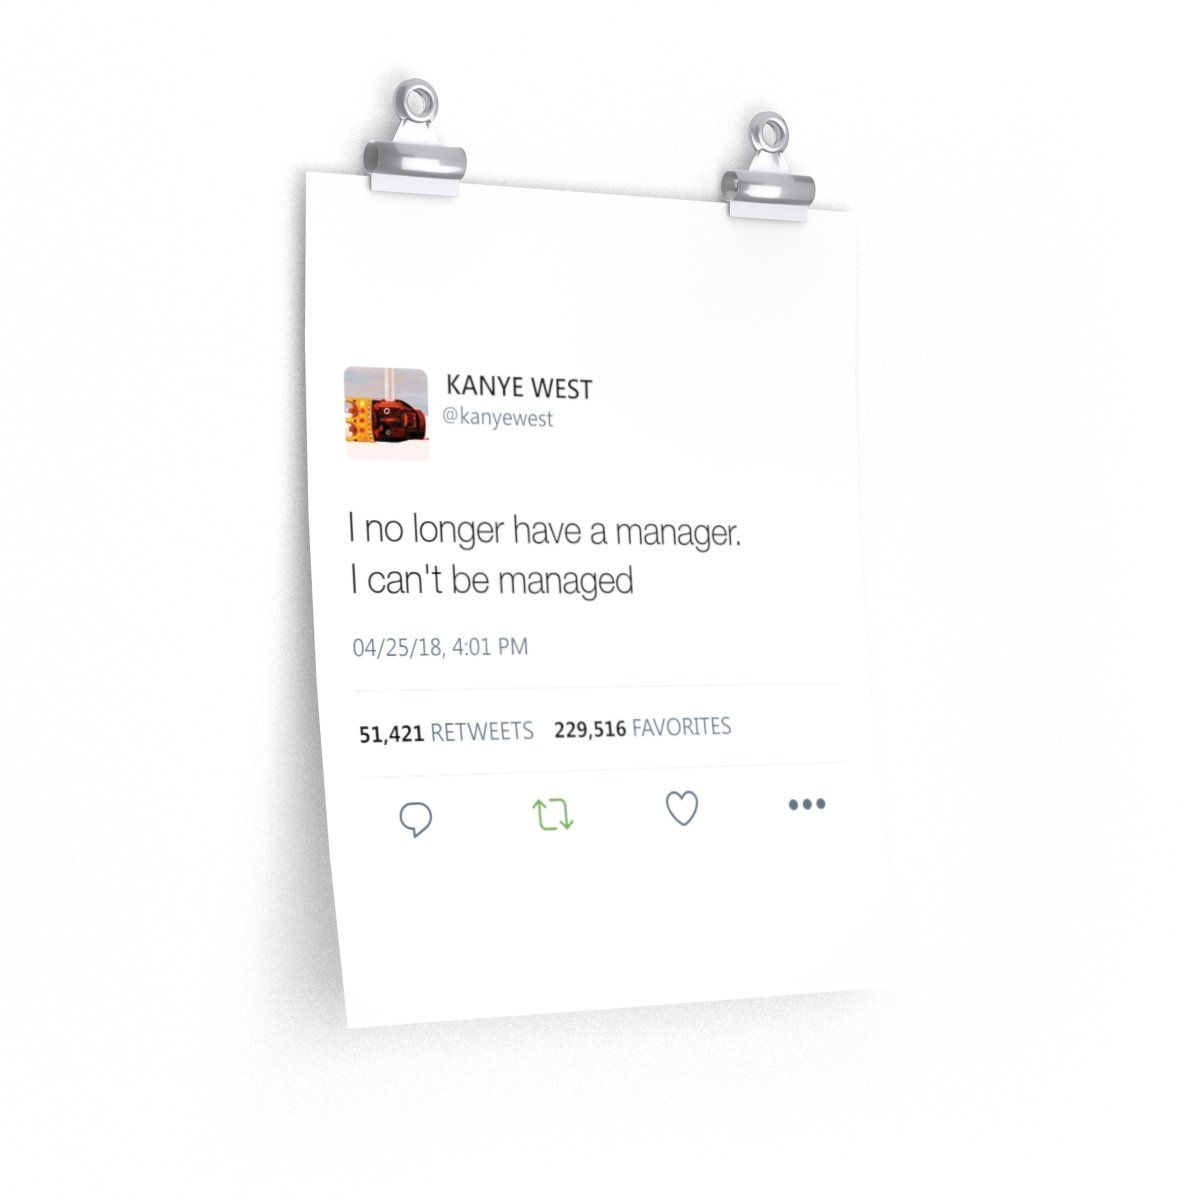 I No Longer Have A Manager I Can T Be Managed Kanye West Tweet Twitter Quote Premium Matte Vertical Posters Kanye West Quotes Twitter Quotes Best Kanye Quotes